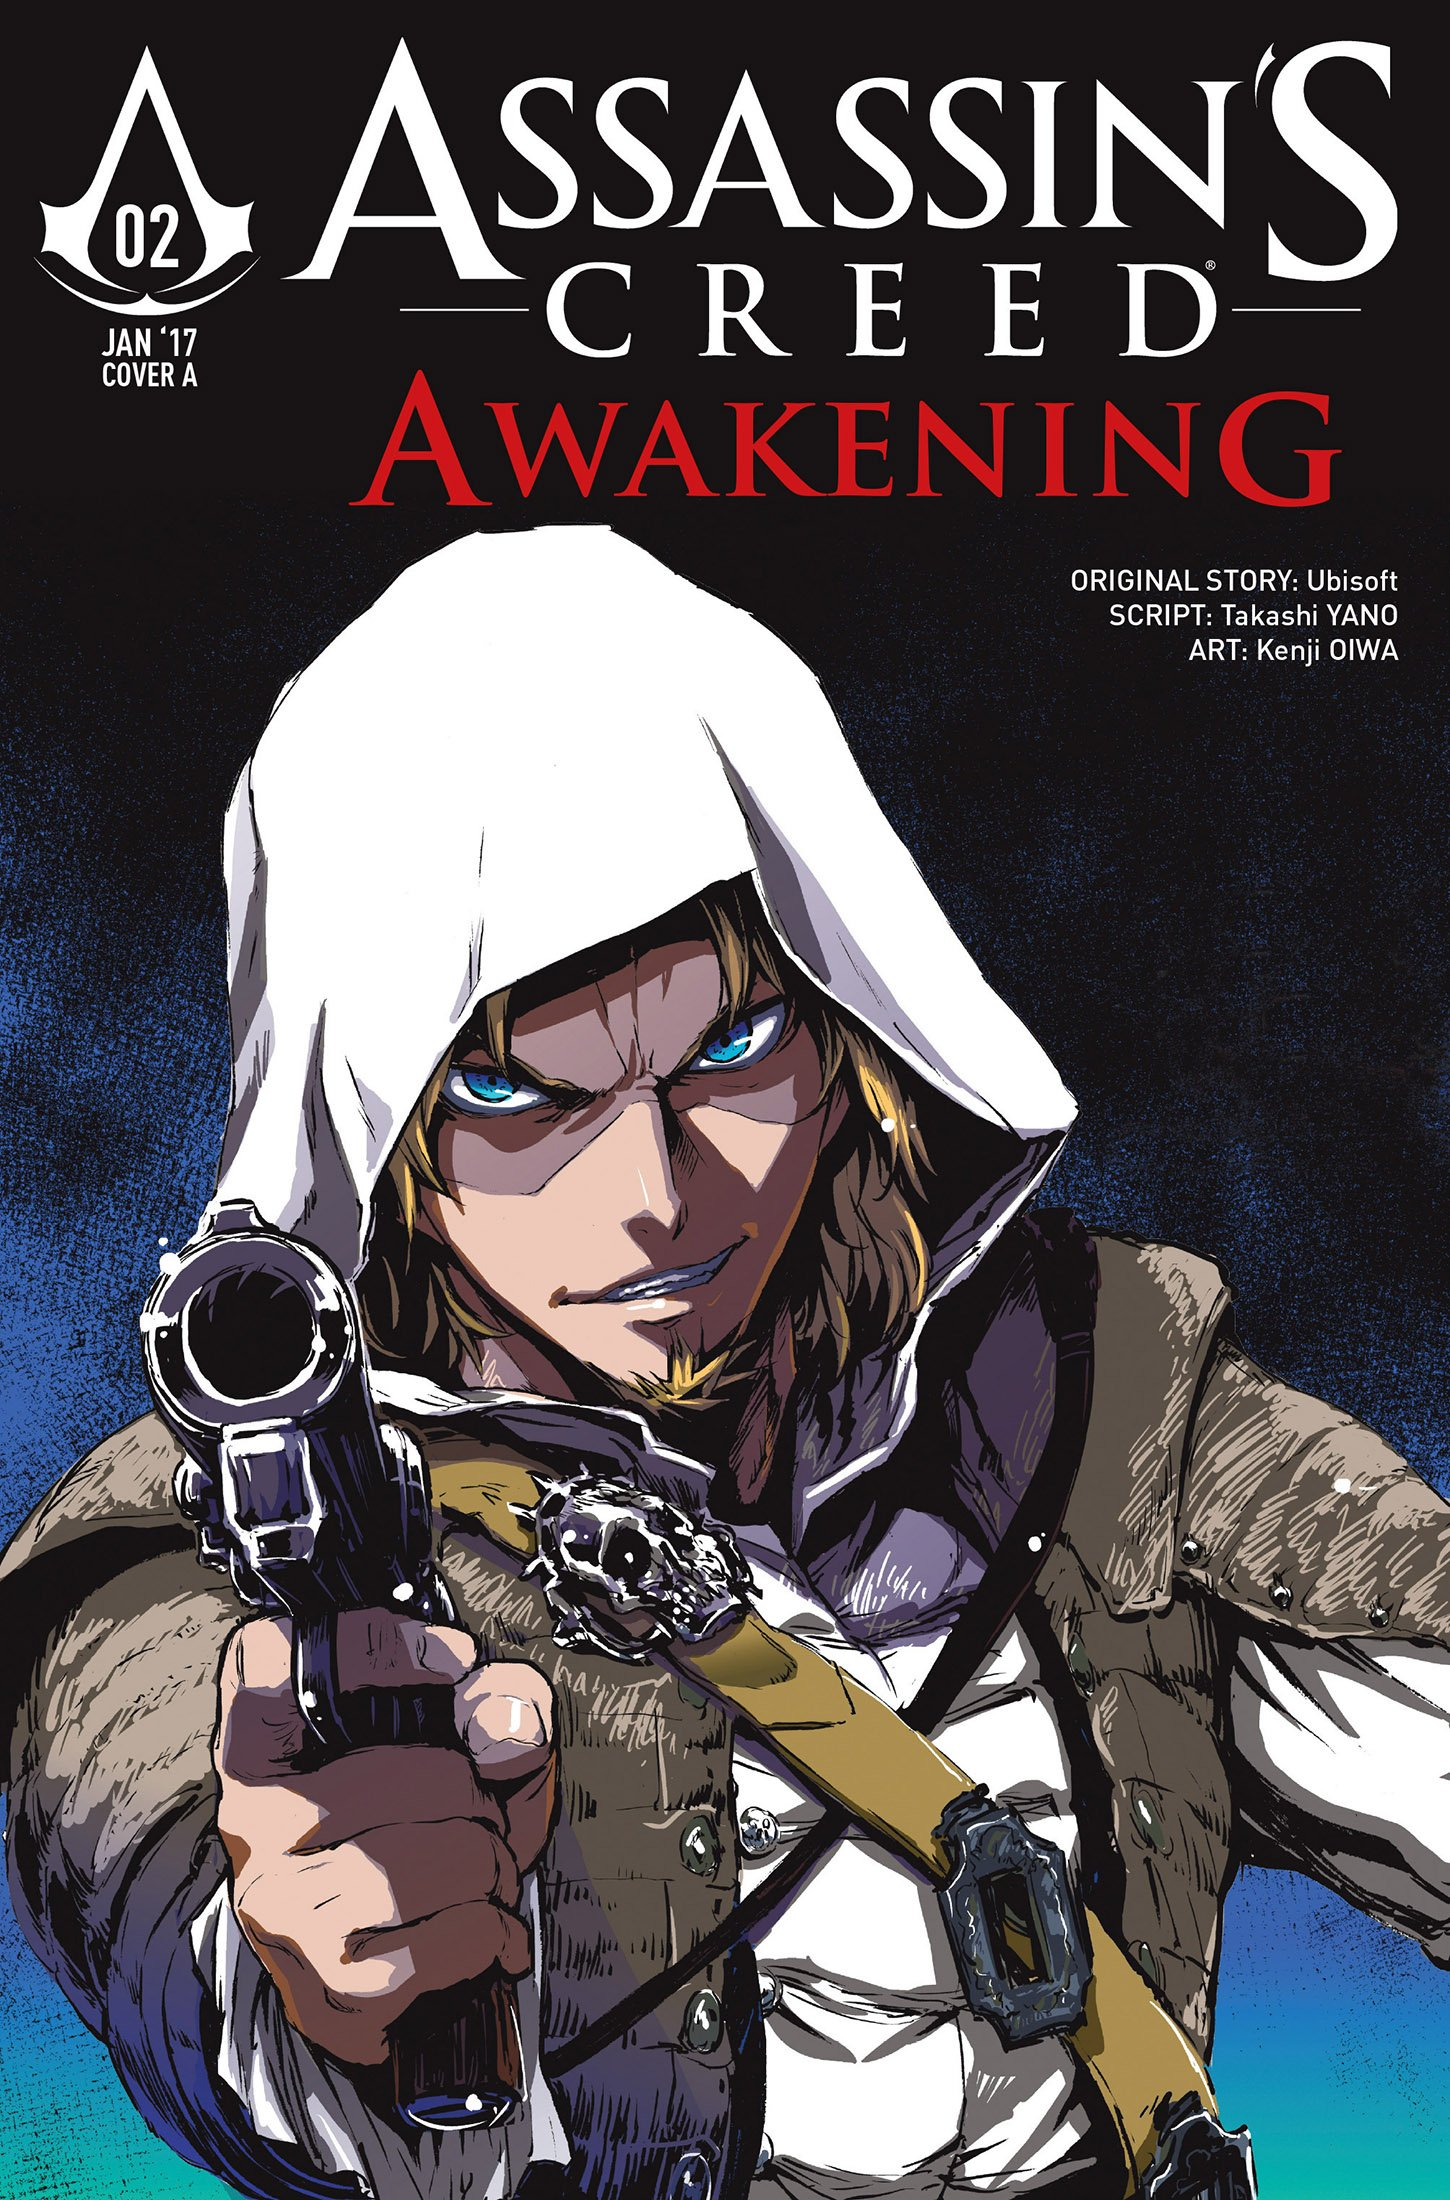 Assassin's Creed - Awakening 02 (January 2017) (cover a)